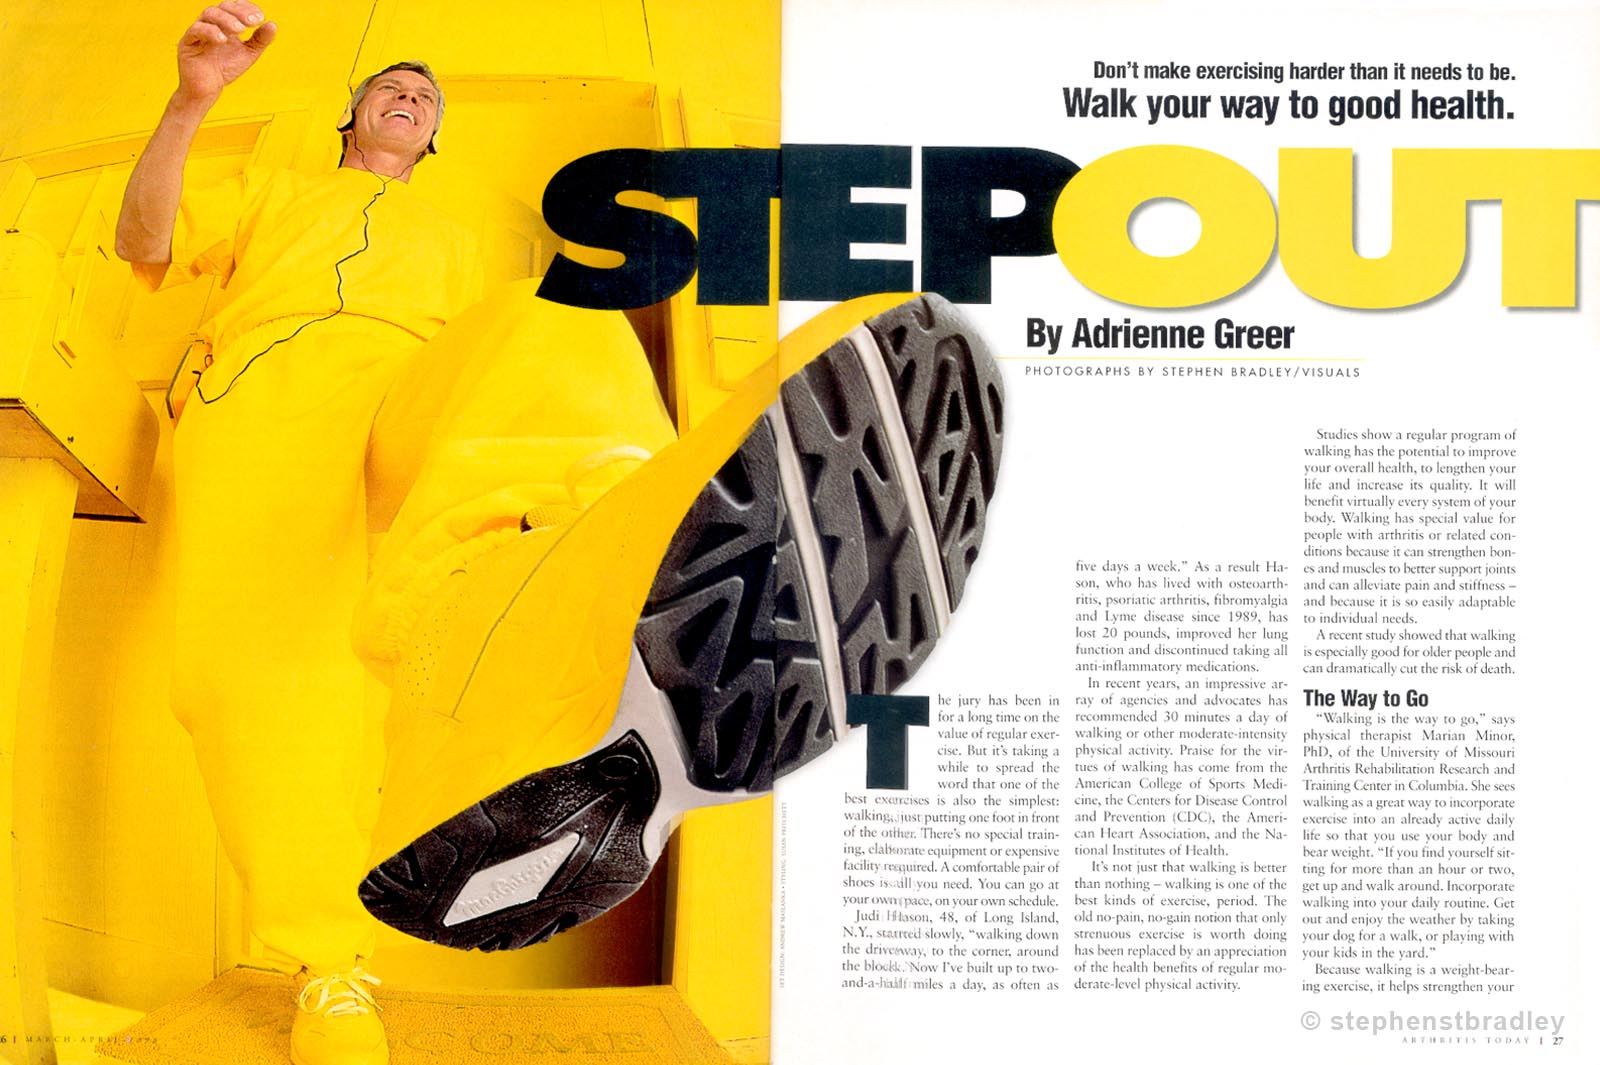 Editorial photography portfolio photo of man in yellow clothes photographed with fisheye lens for Arthritis Today magazine - photo by Stephen S T Bradley